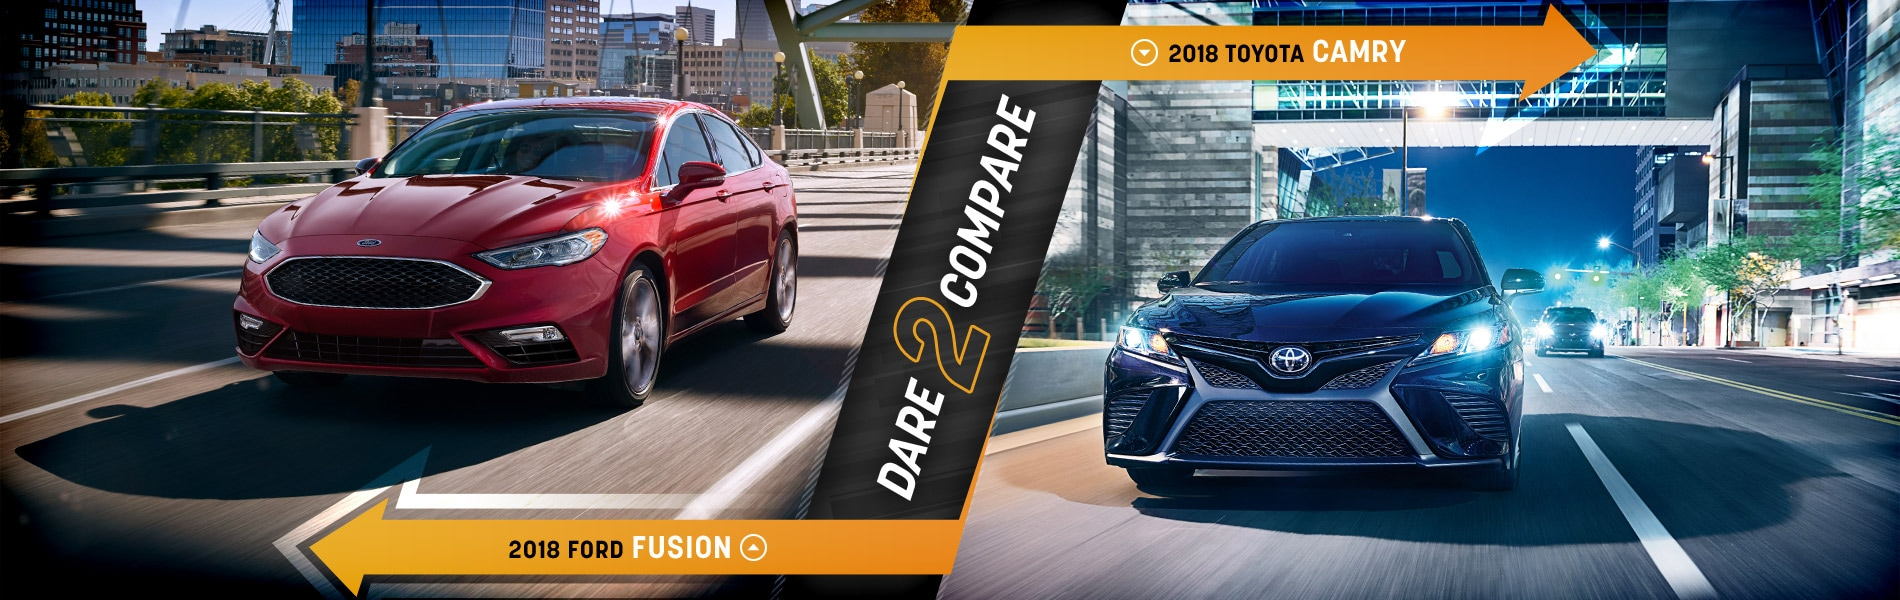 Perfect 2018 Ford Fusion Vs 2018 Toyota Camry